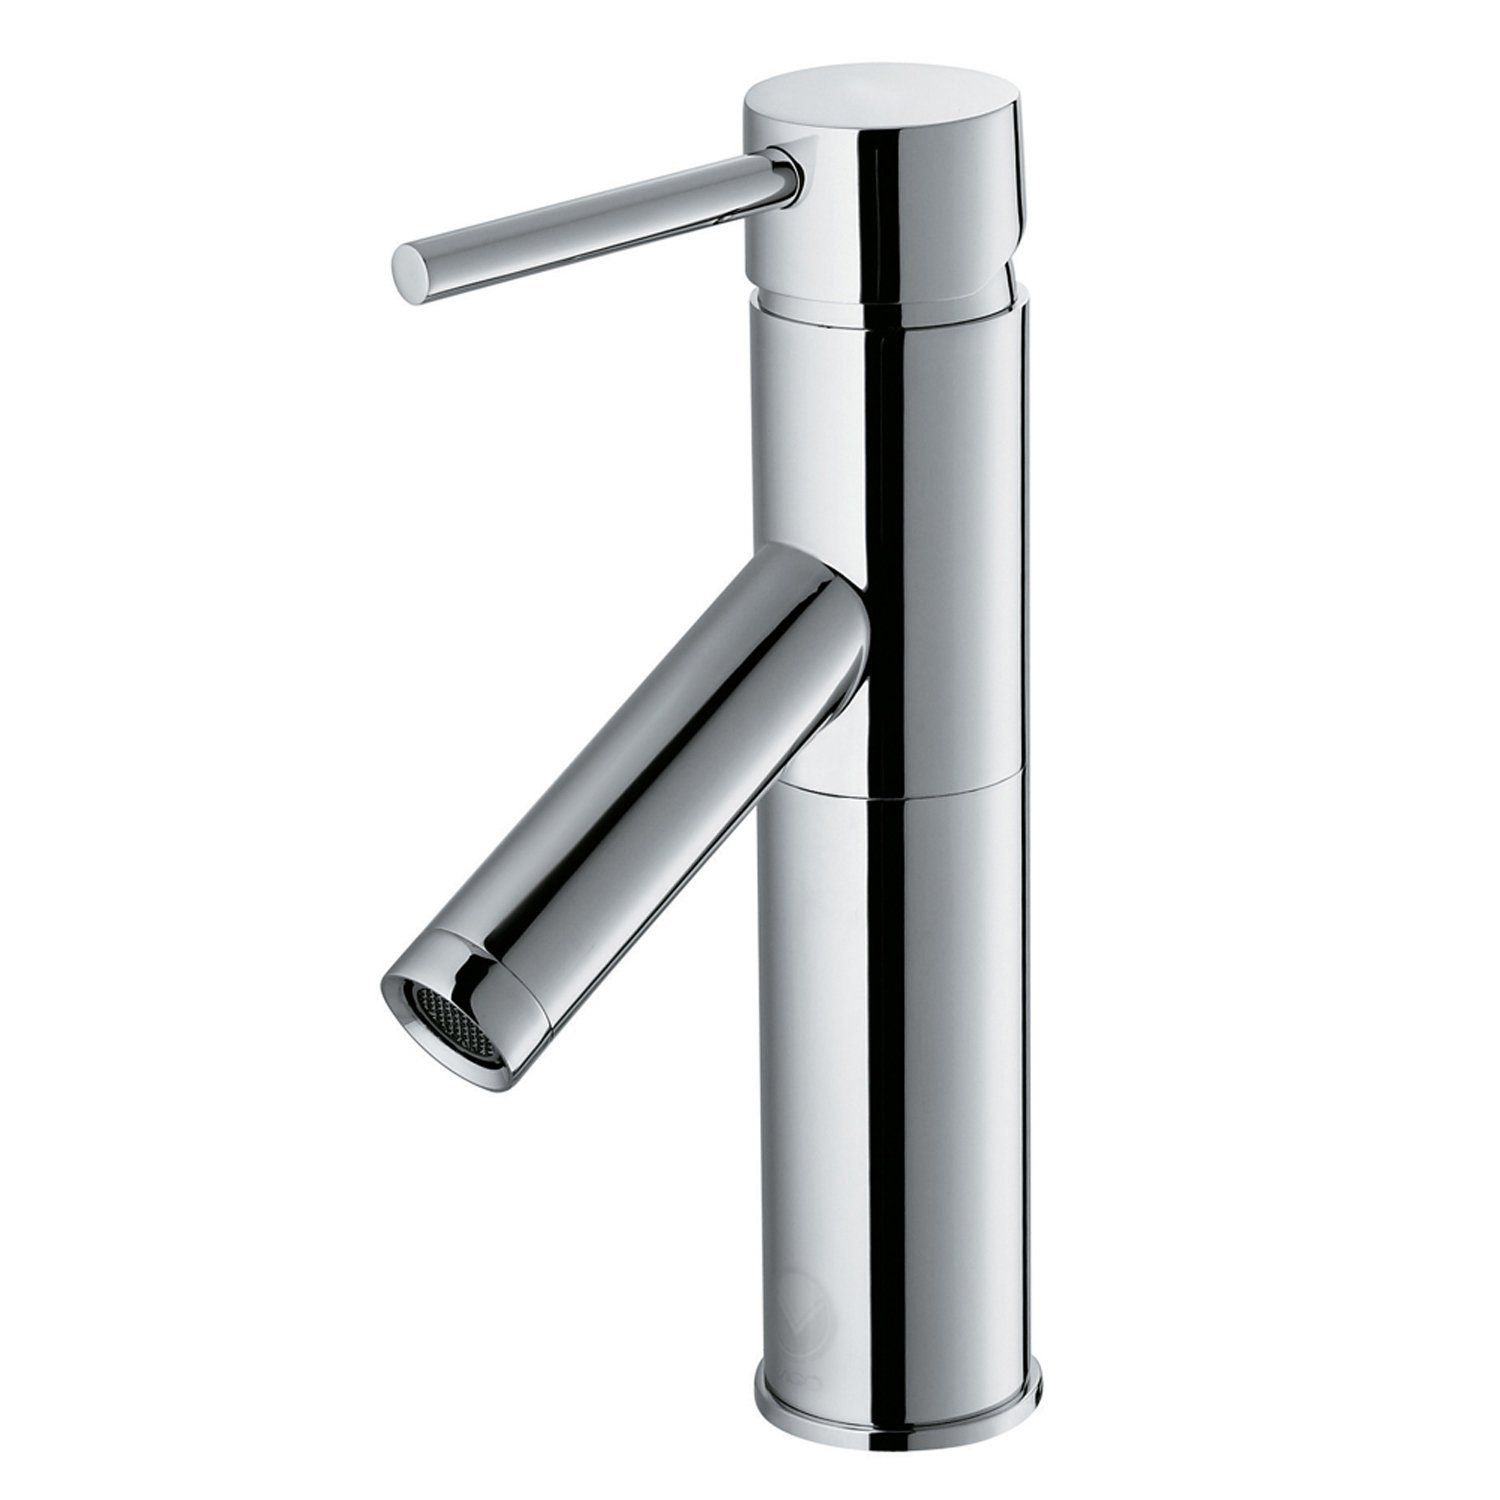 vigo bathroom faucets. Vigo Alicia Single Hole Bathroom Faucet With Downward Angled Spout - E Chrome Lavatory Handle Faucets